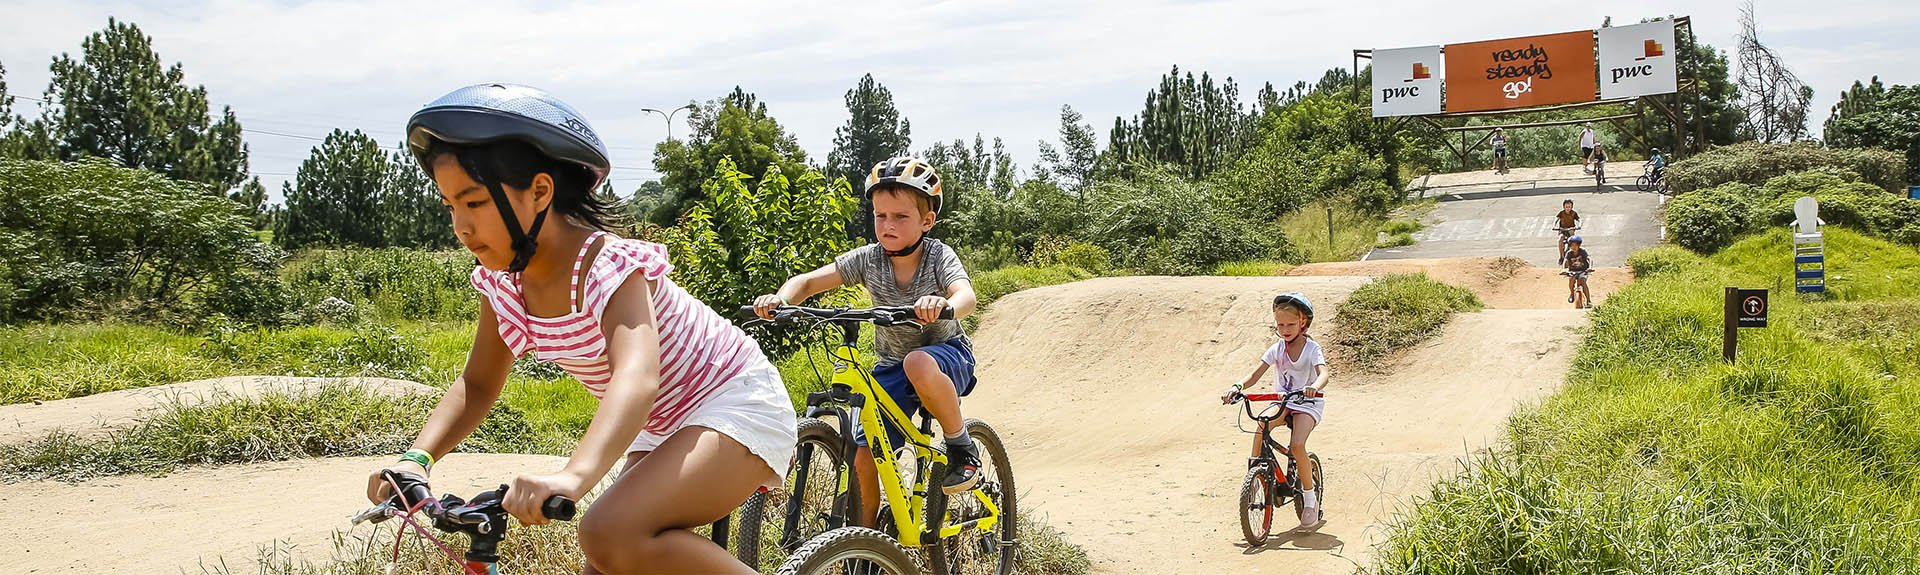 PWC Bike Park | Gauteng | Kids'  Sport Activities